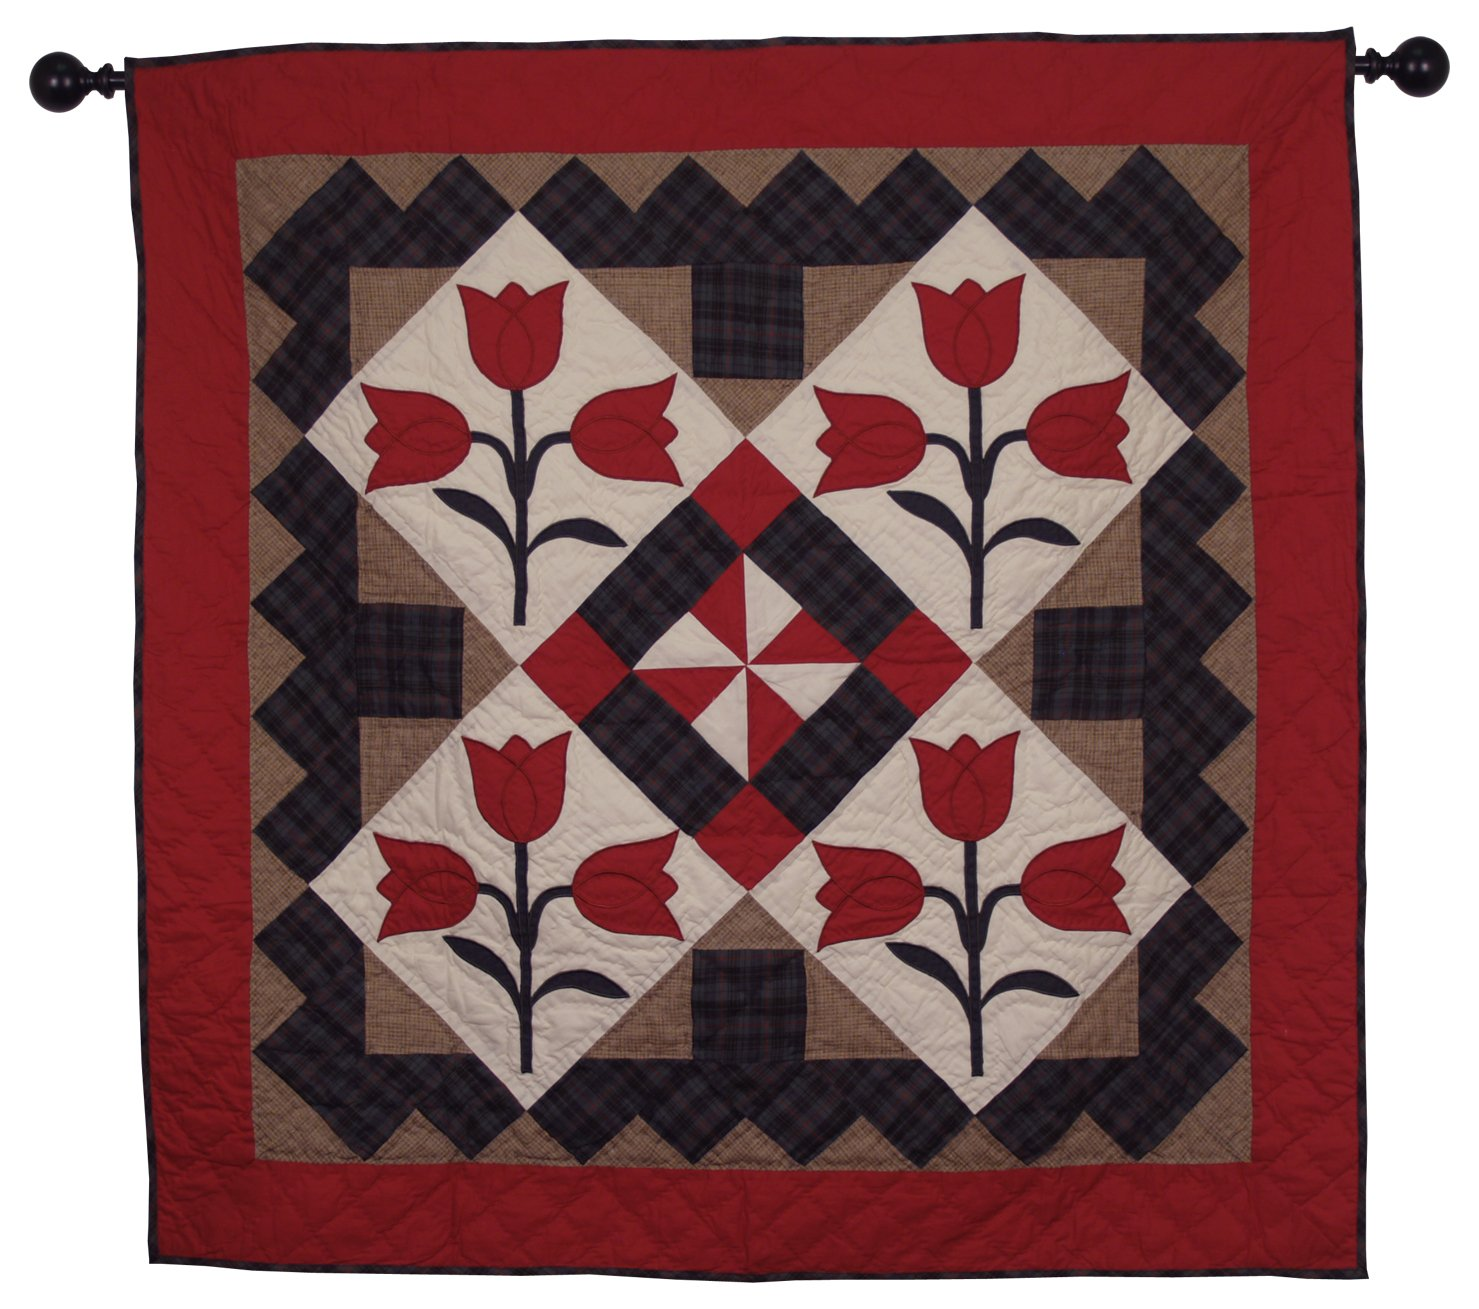 Tulip Wall Hanging Quilt 44 Inches by 44 Inches 100% Cotton Handmade Hand Quilted Heirloom Quality